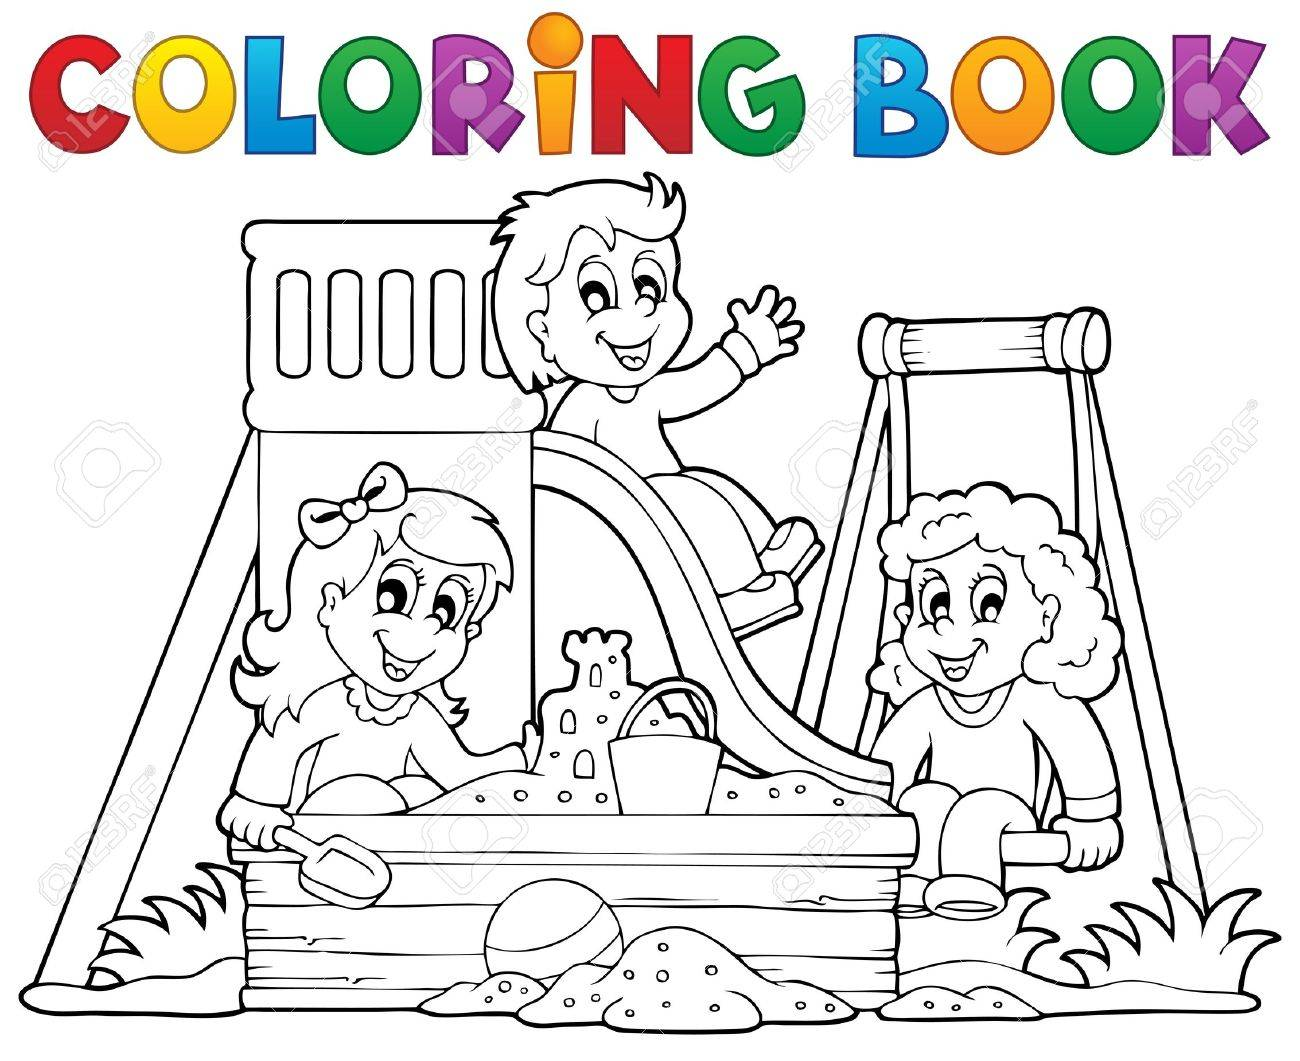 Coloring book playground theme 1 - eps10 vector illustration Stock Vector - 22867100